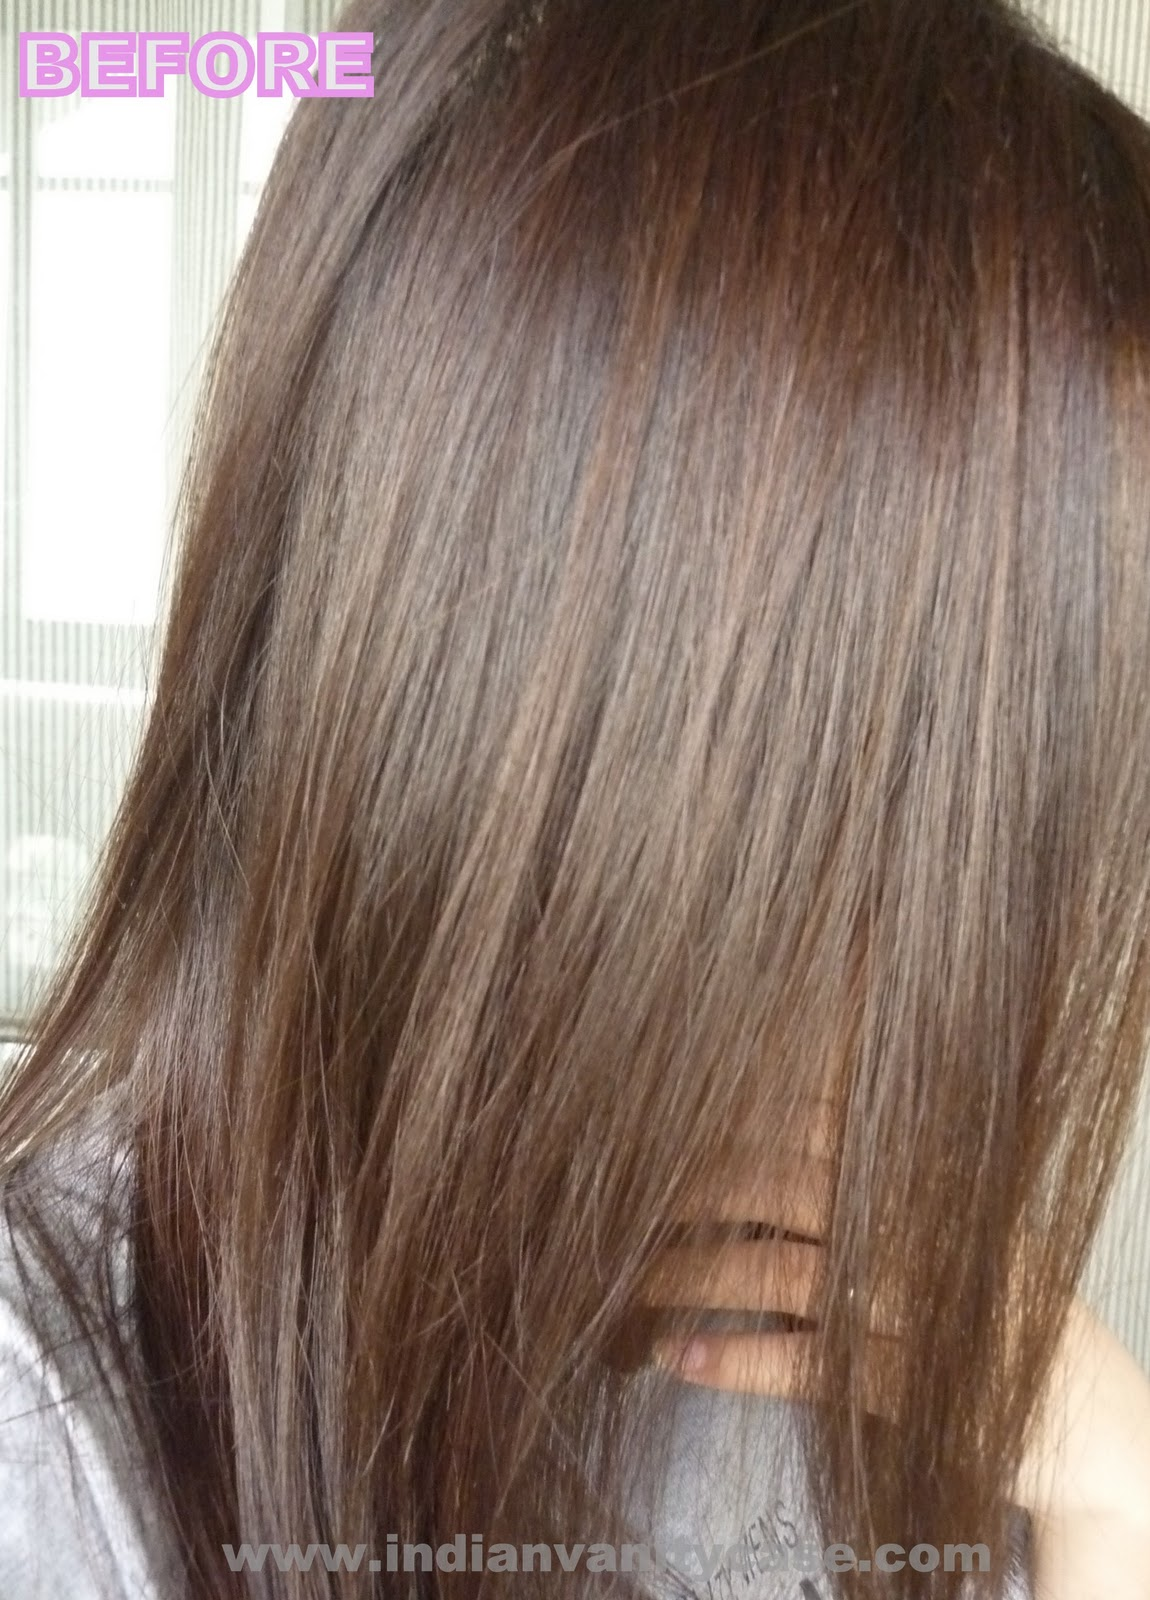 After using Wella Kolestint 6/0 Light Brown , my hair turned a level 2 ...